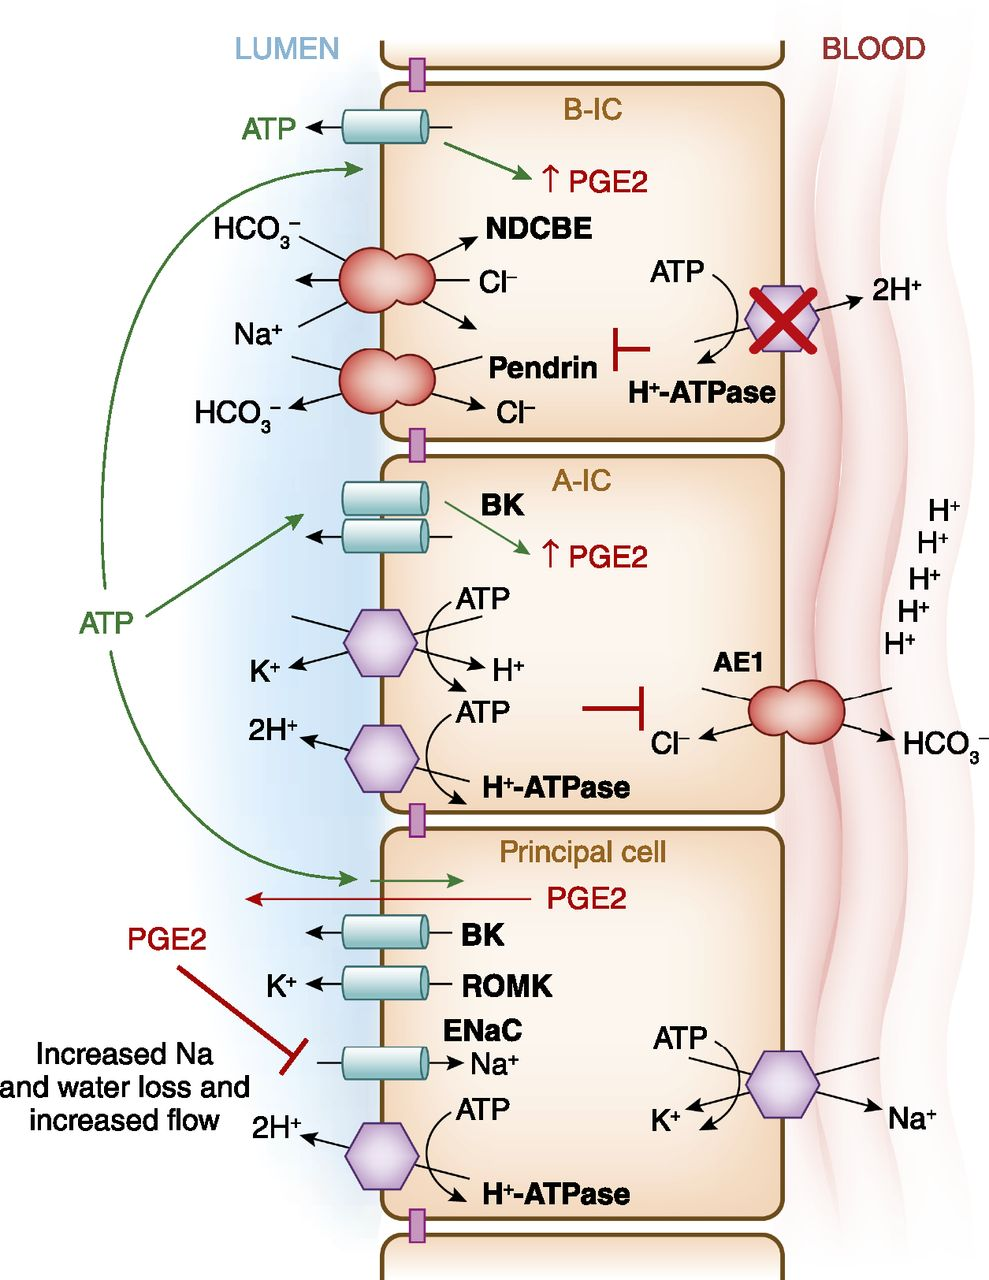 Collecting Duct Intercalated Cell Function and Regulation